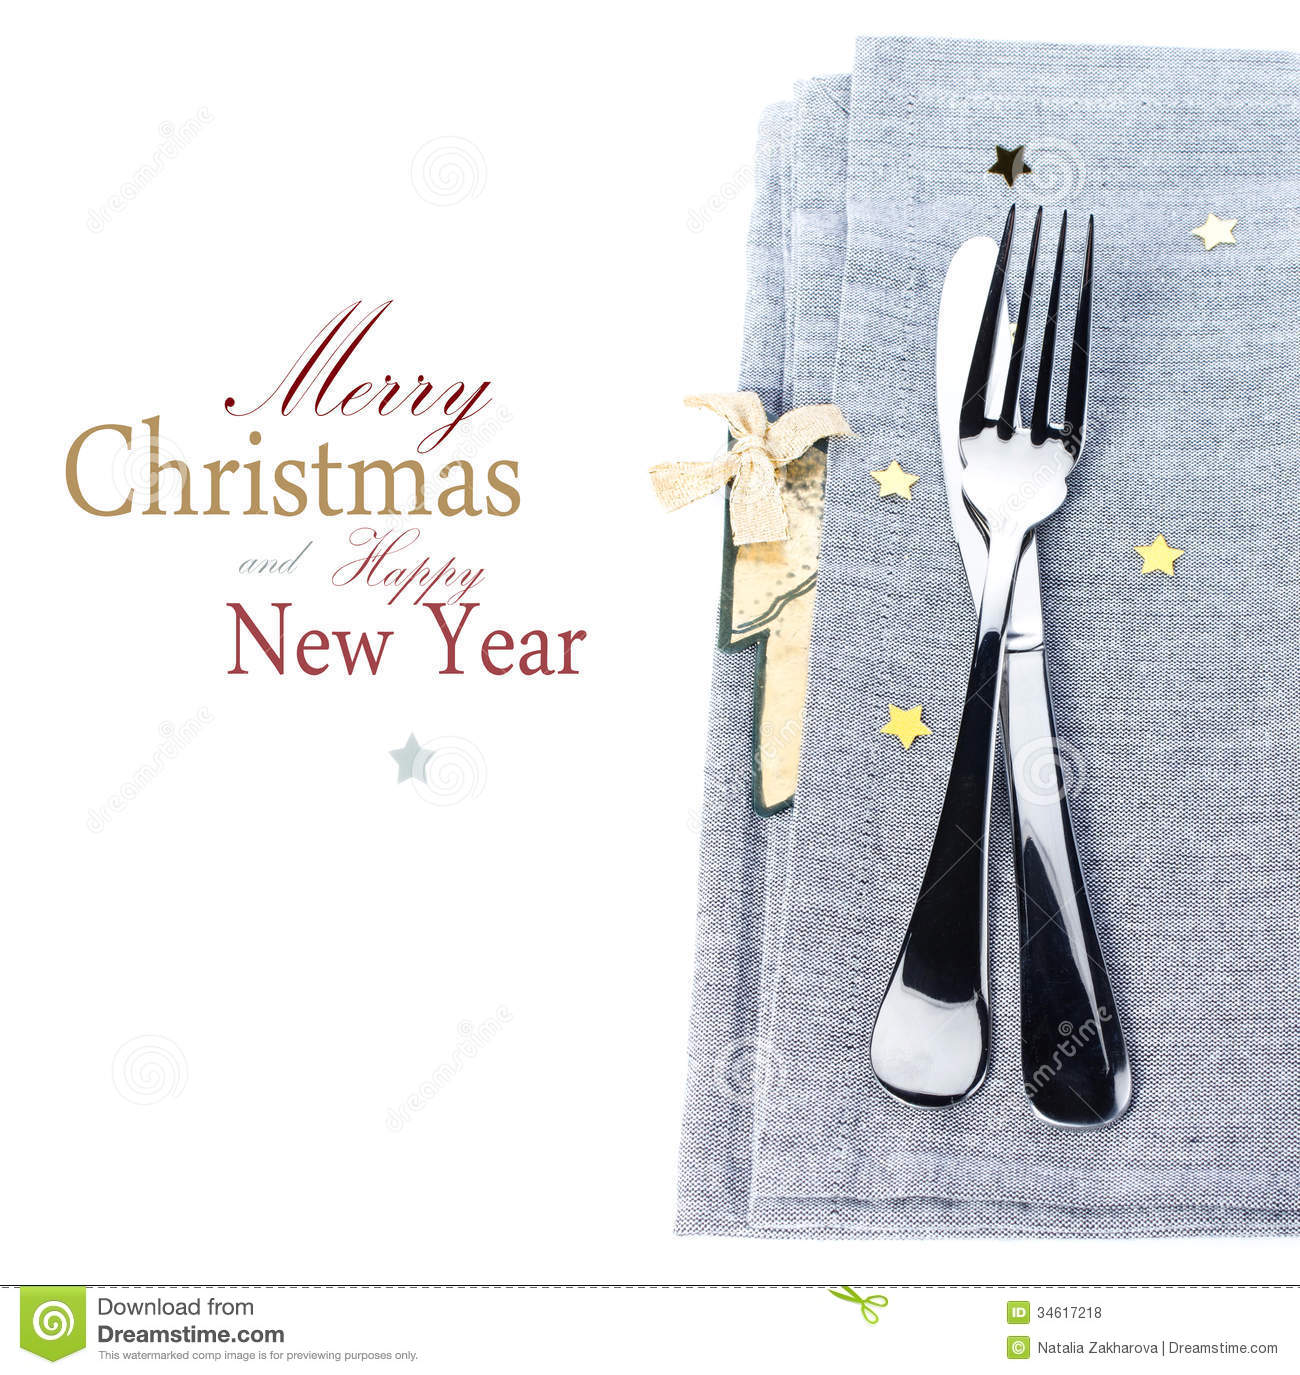 Sample Christmas Tree Decorating Ideas: Christmas Table Place Setting With Christmas Decorations